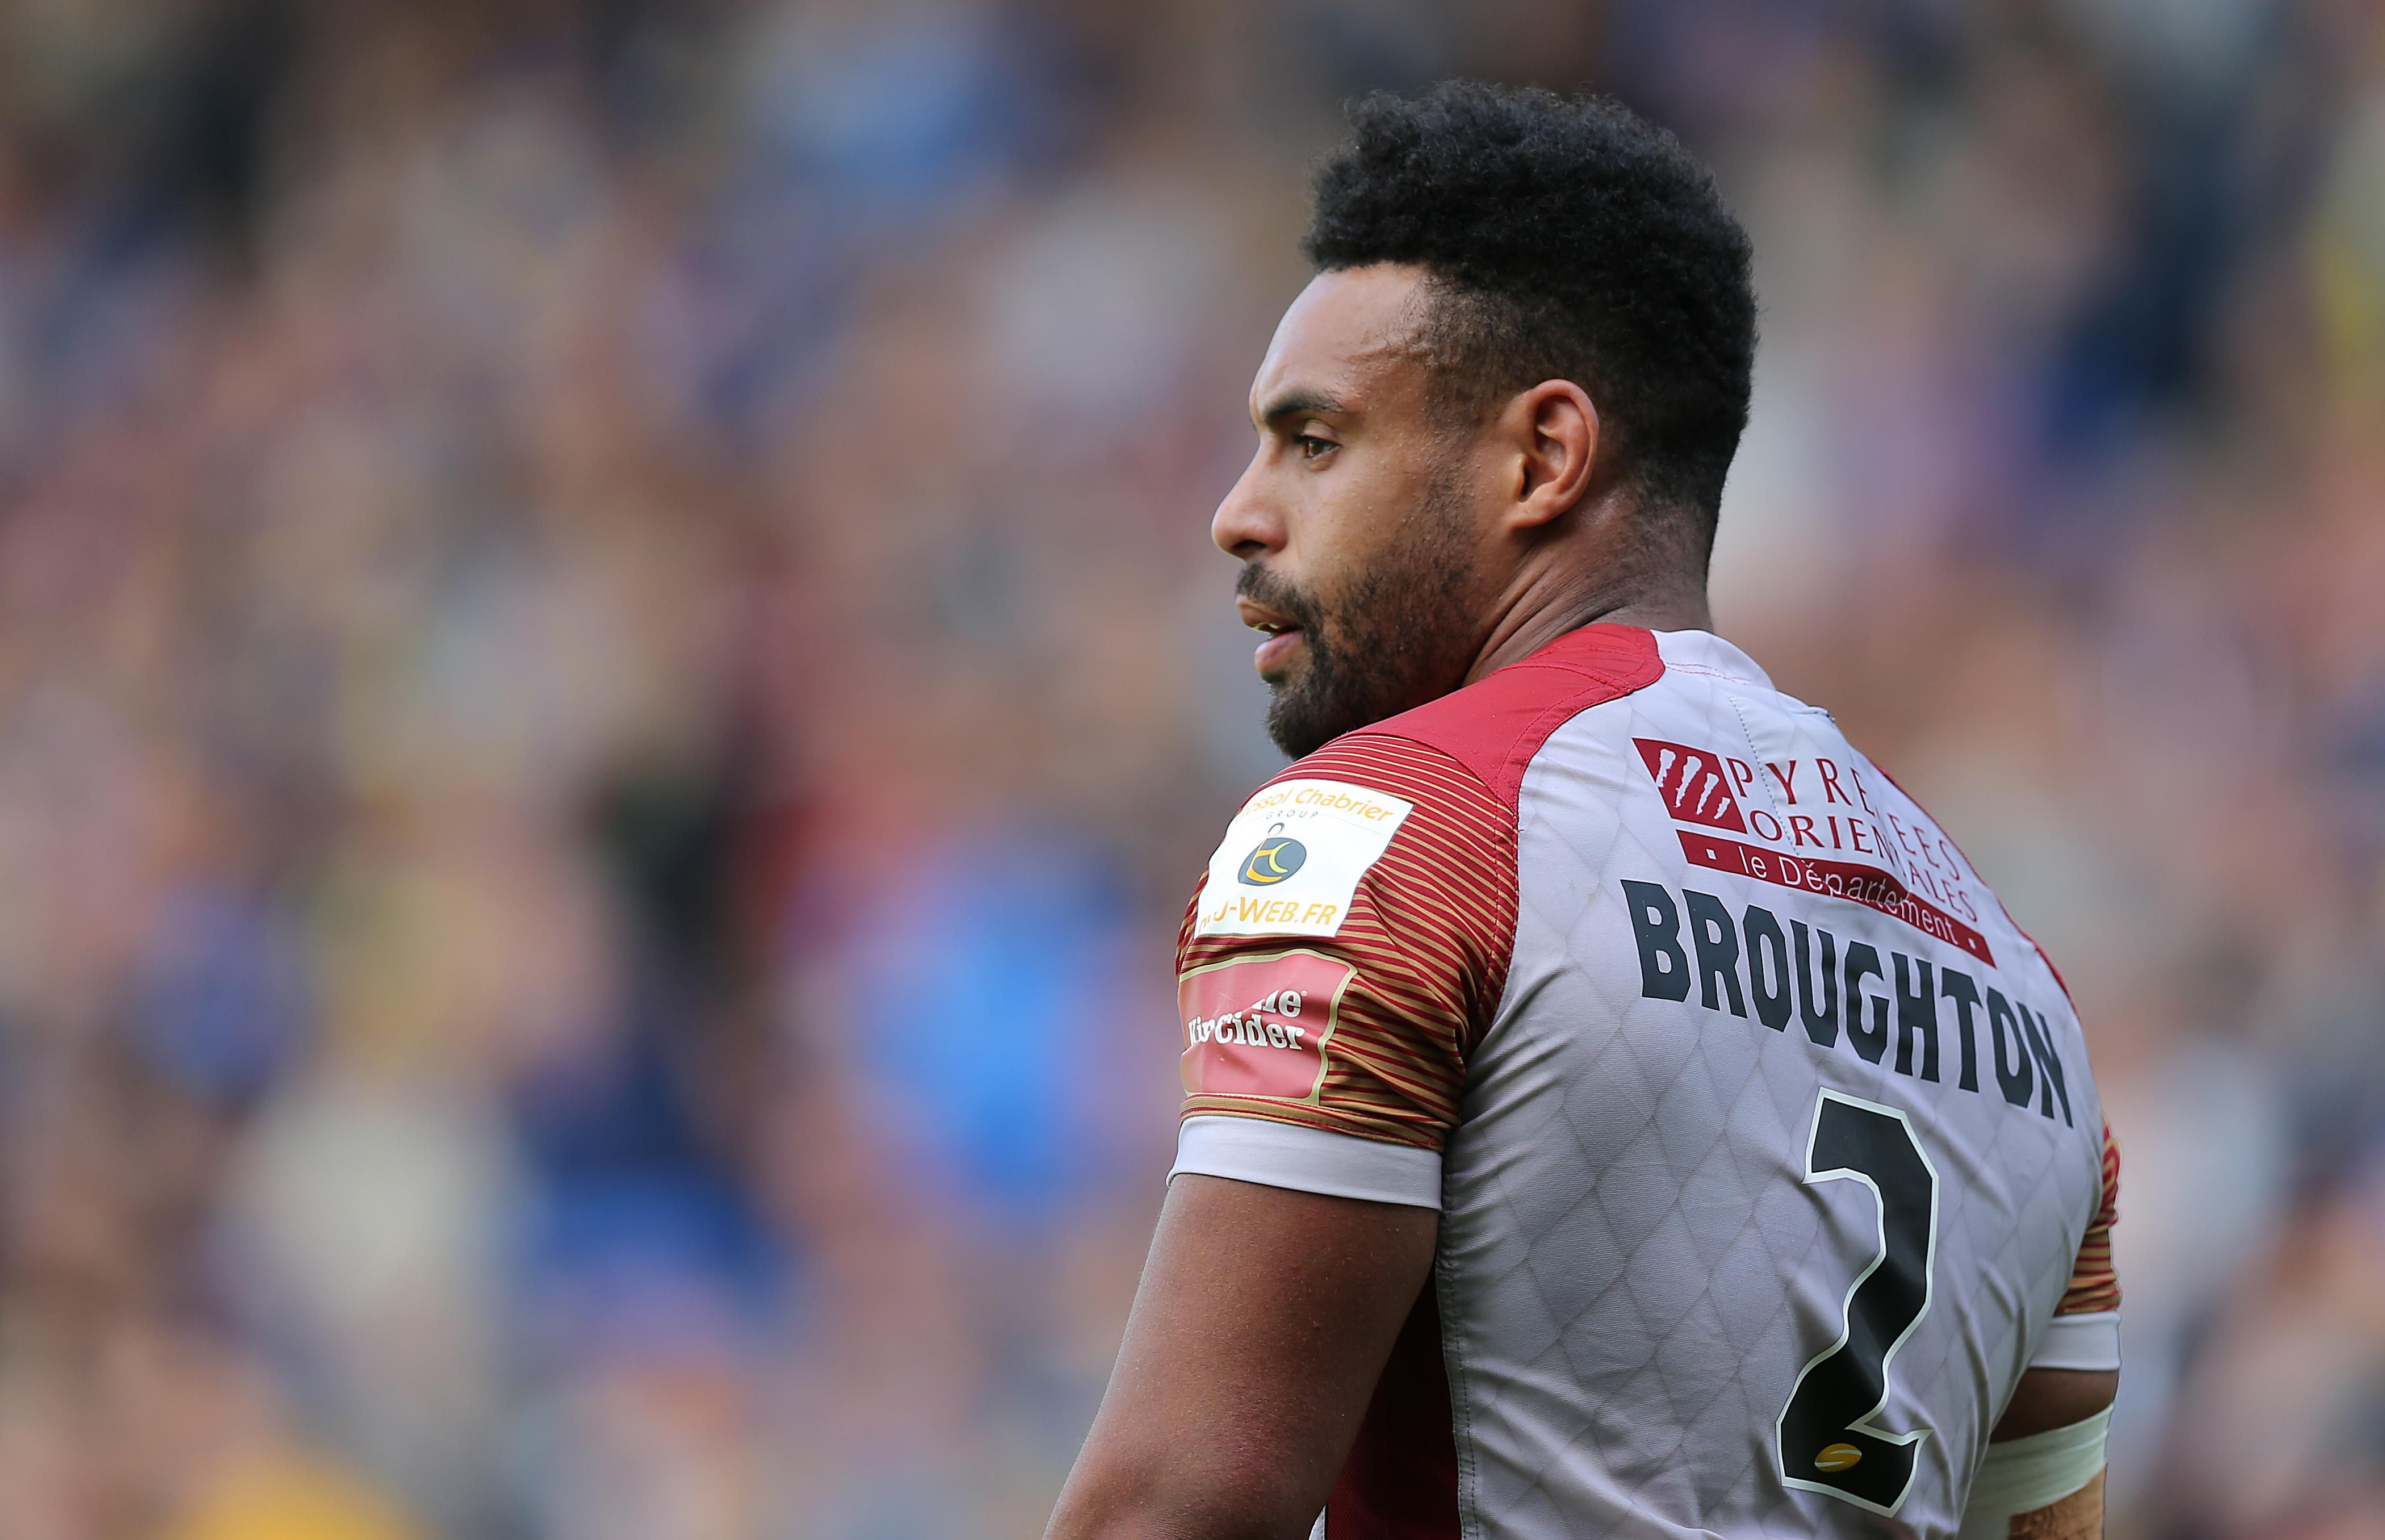 Jodie Broughton has found form on the wing for Catalans